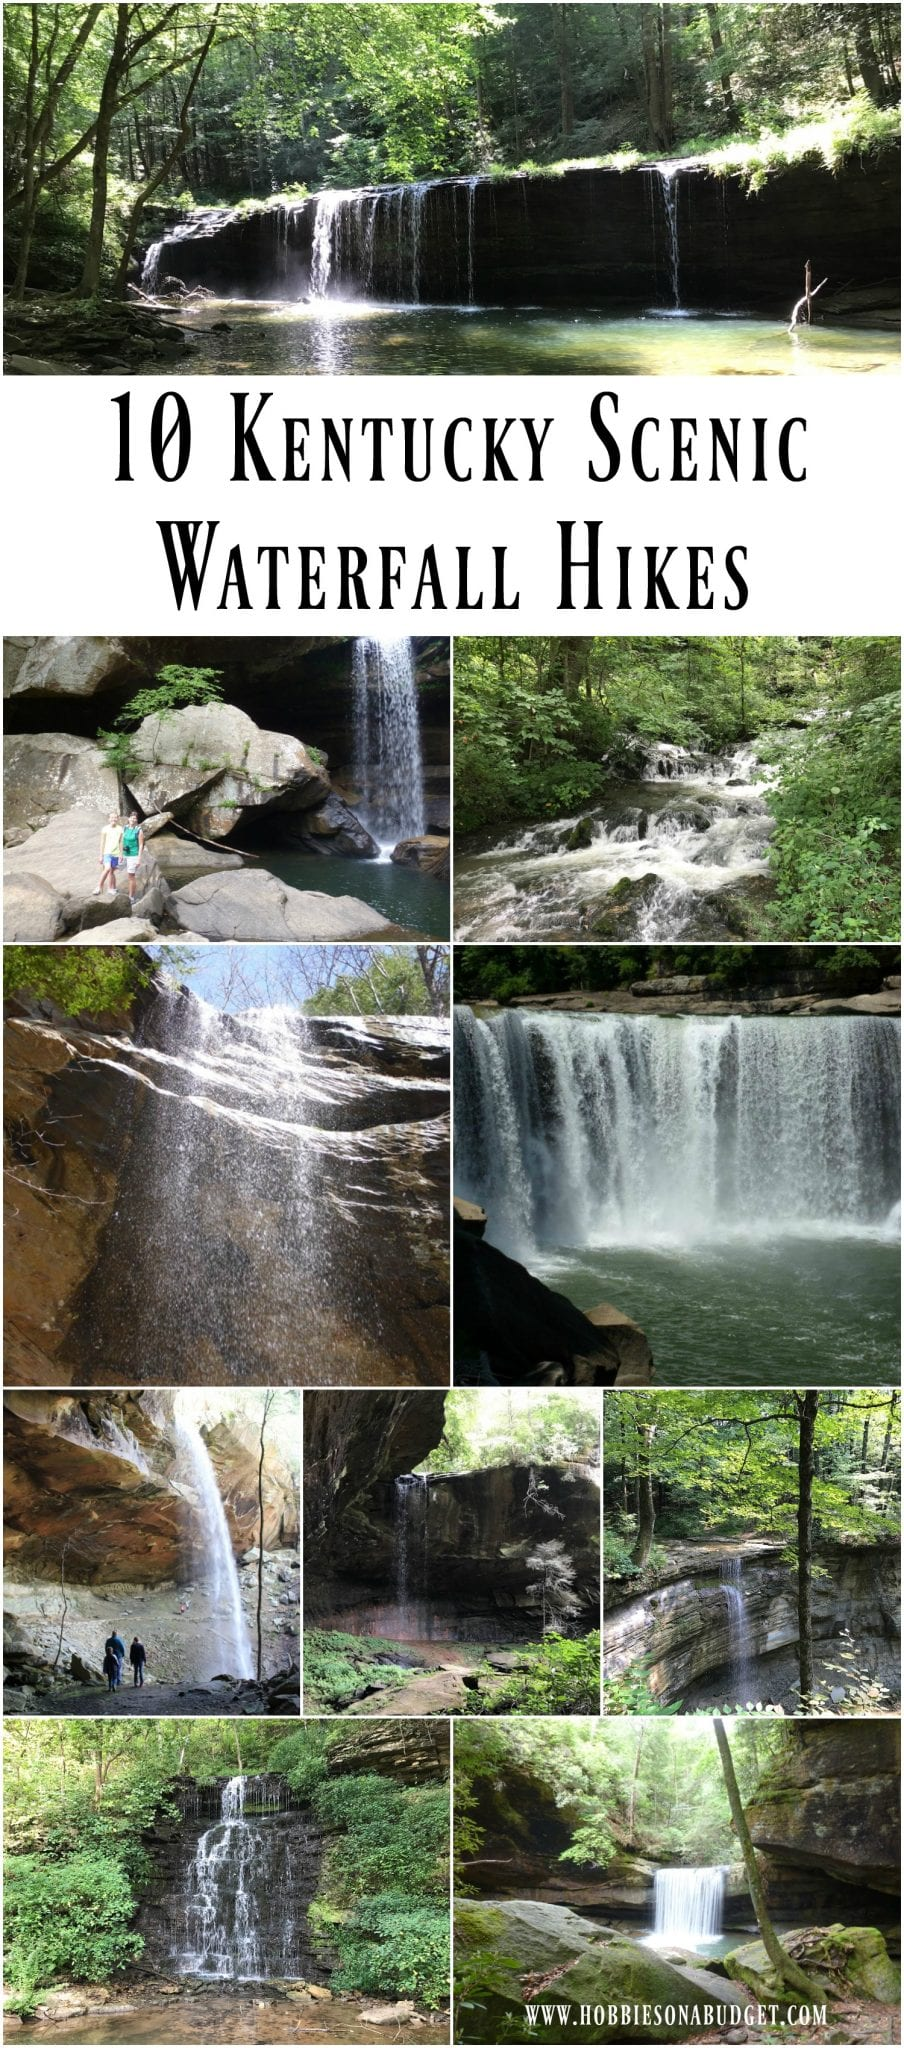 10 Kentucky Scenic Waterfall Hikes